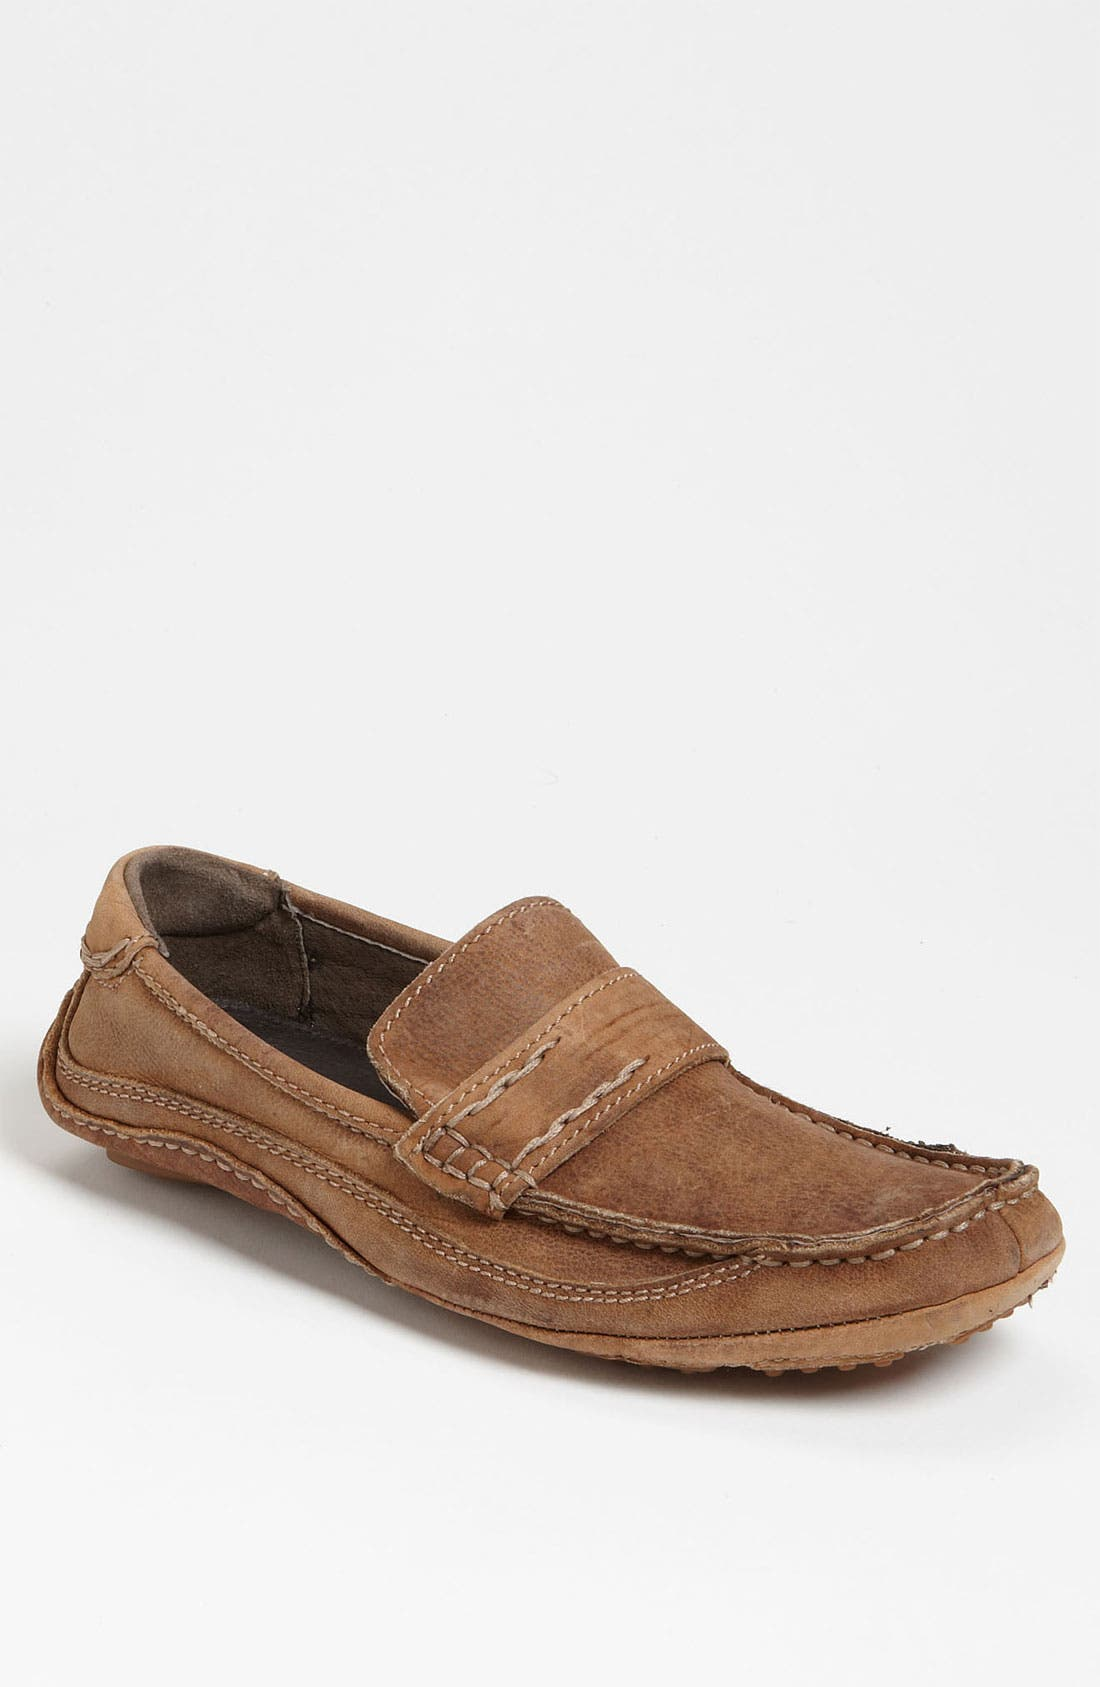 Alternate Image 1 Selected - Bed Stu 'Keeper' Driving Shoe (Online Only) (Men)